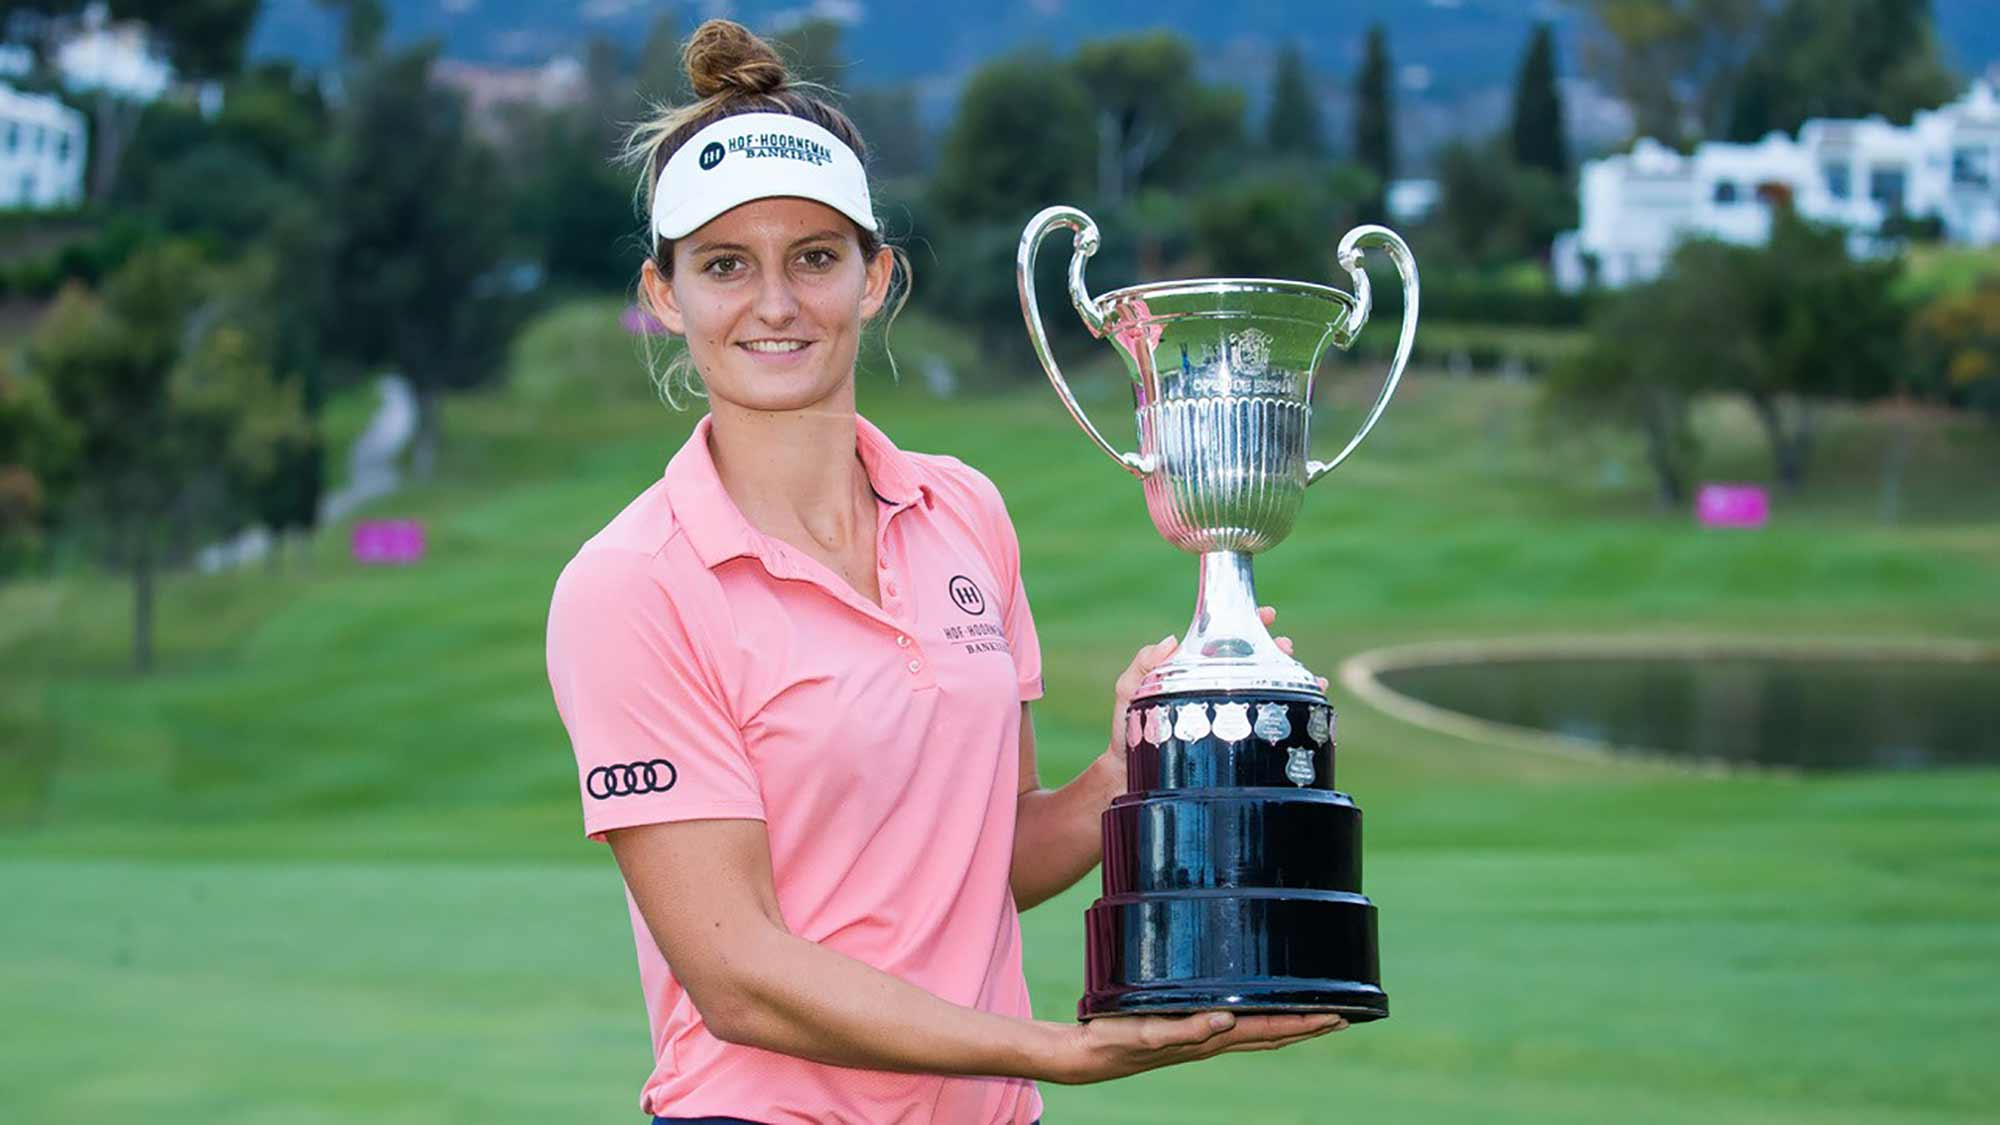 Anne van Dam poses with the trophy after successfully defending her title at the Andalucia Costa del Sol Open de Espana on the Ladies European Tour